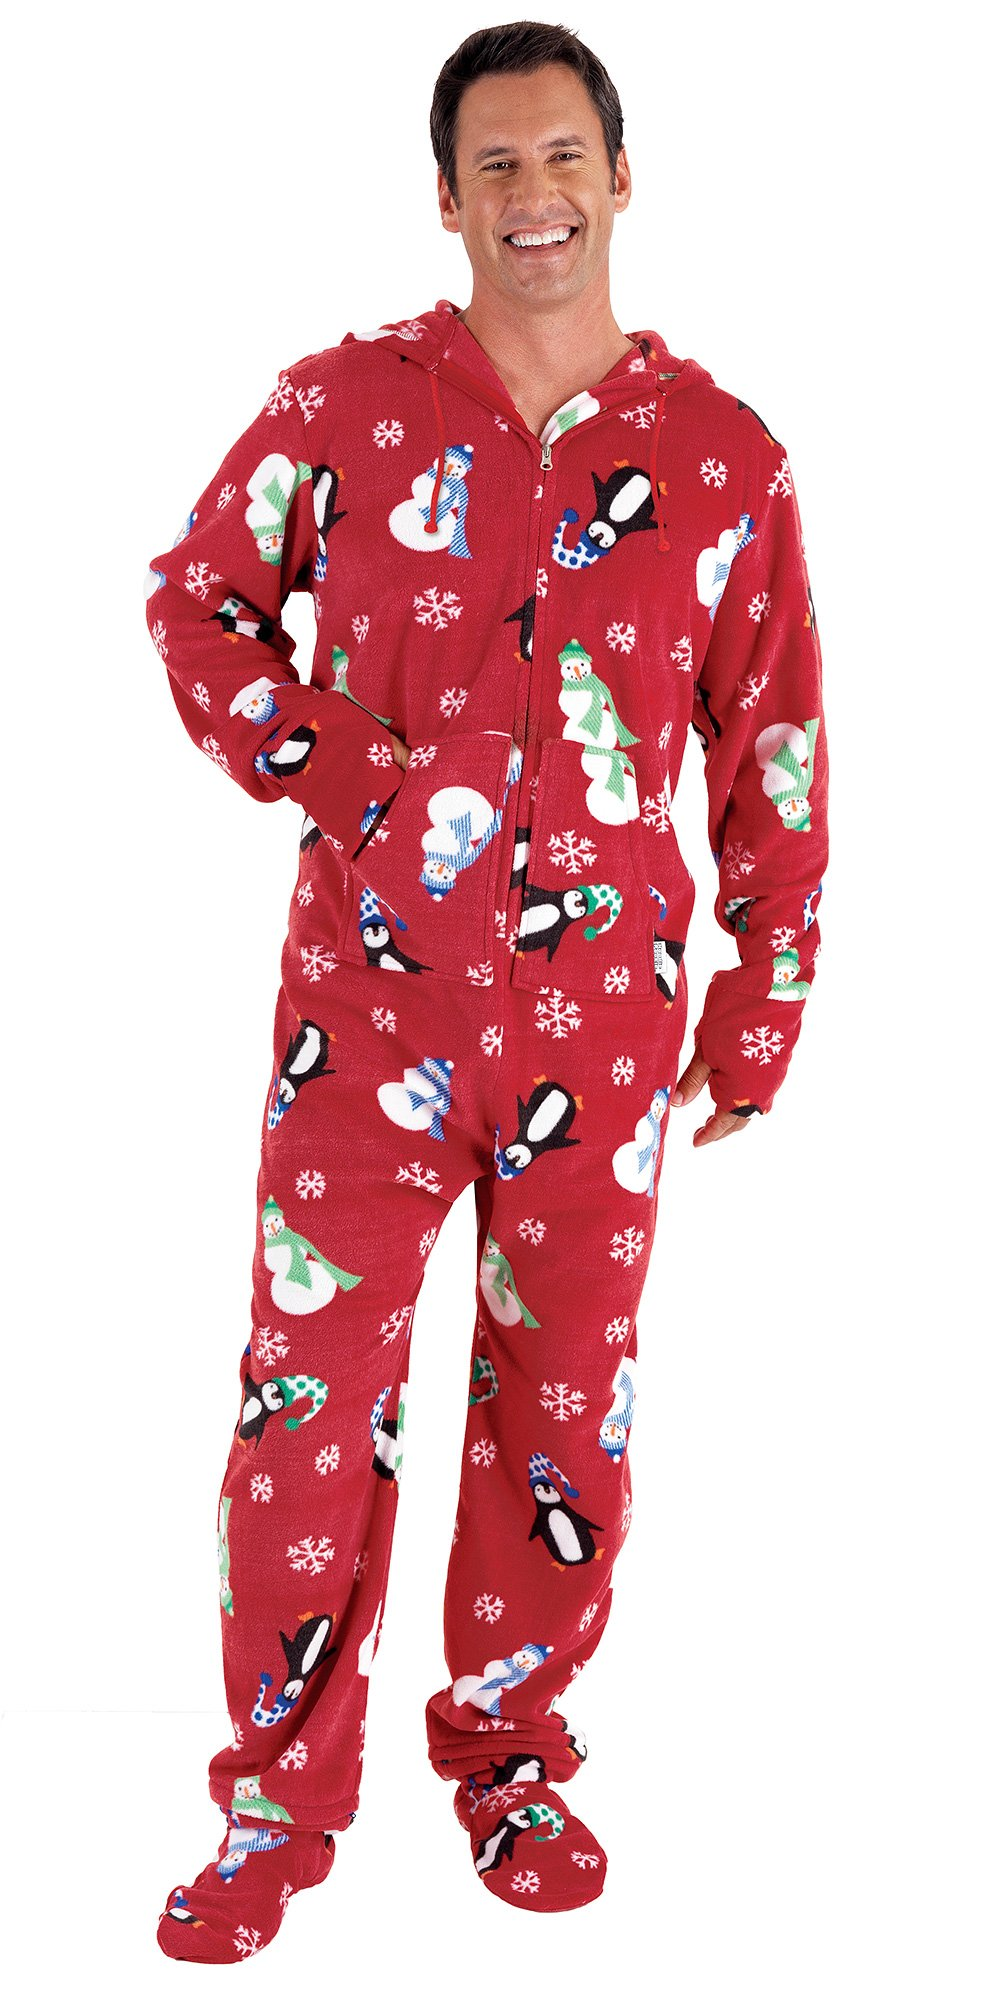 Holiday spirit:) This is a NWT ugly Christmas holiday union suit for men (or women) size XXL. It is made of a soft % brushed fleece fabric and zips up the front. It features dancing unicorns, rei.